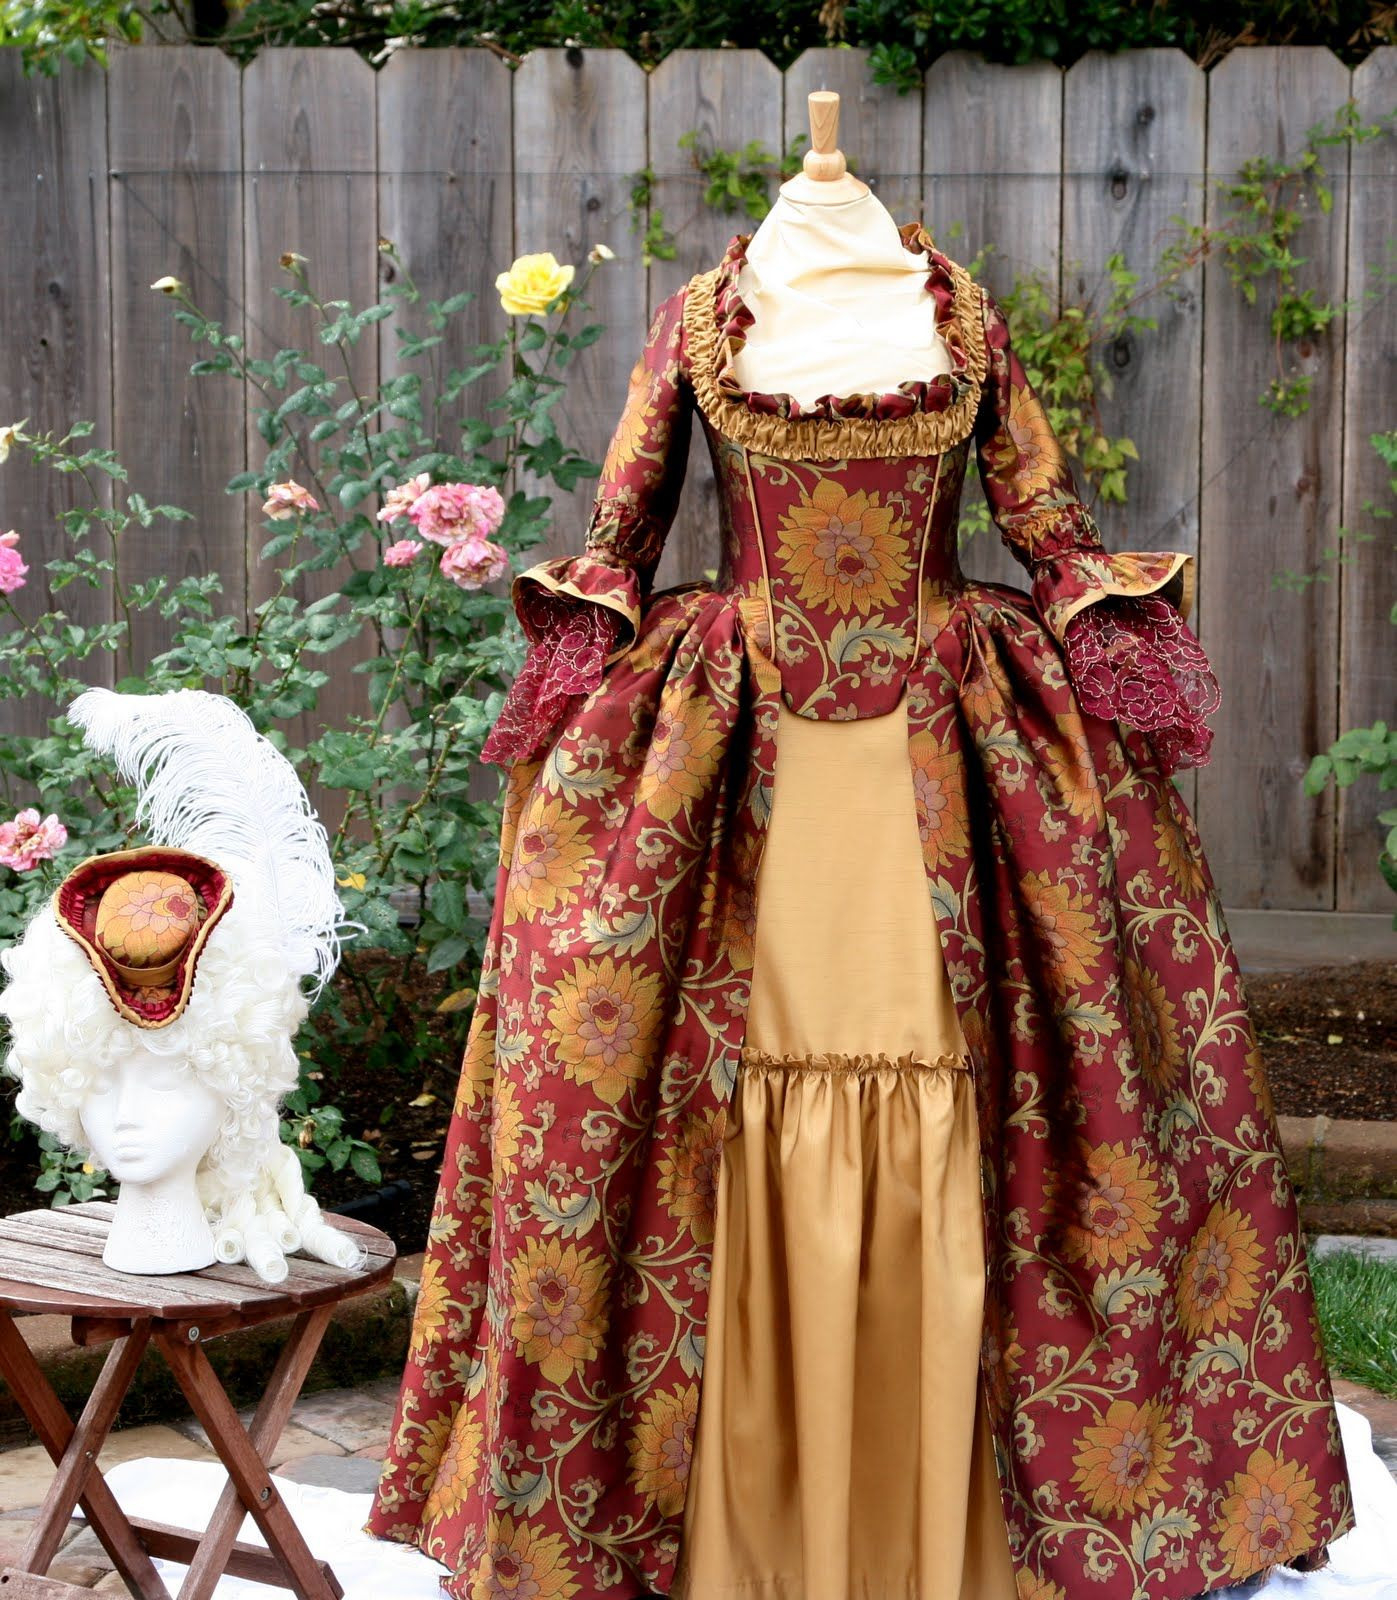 18Th Century Gown Those Flowers Are Nice With The Golden